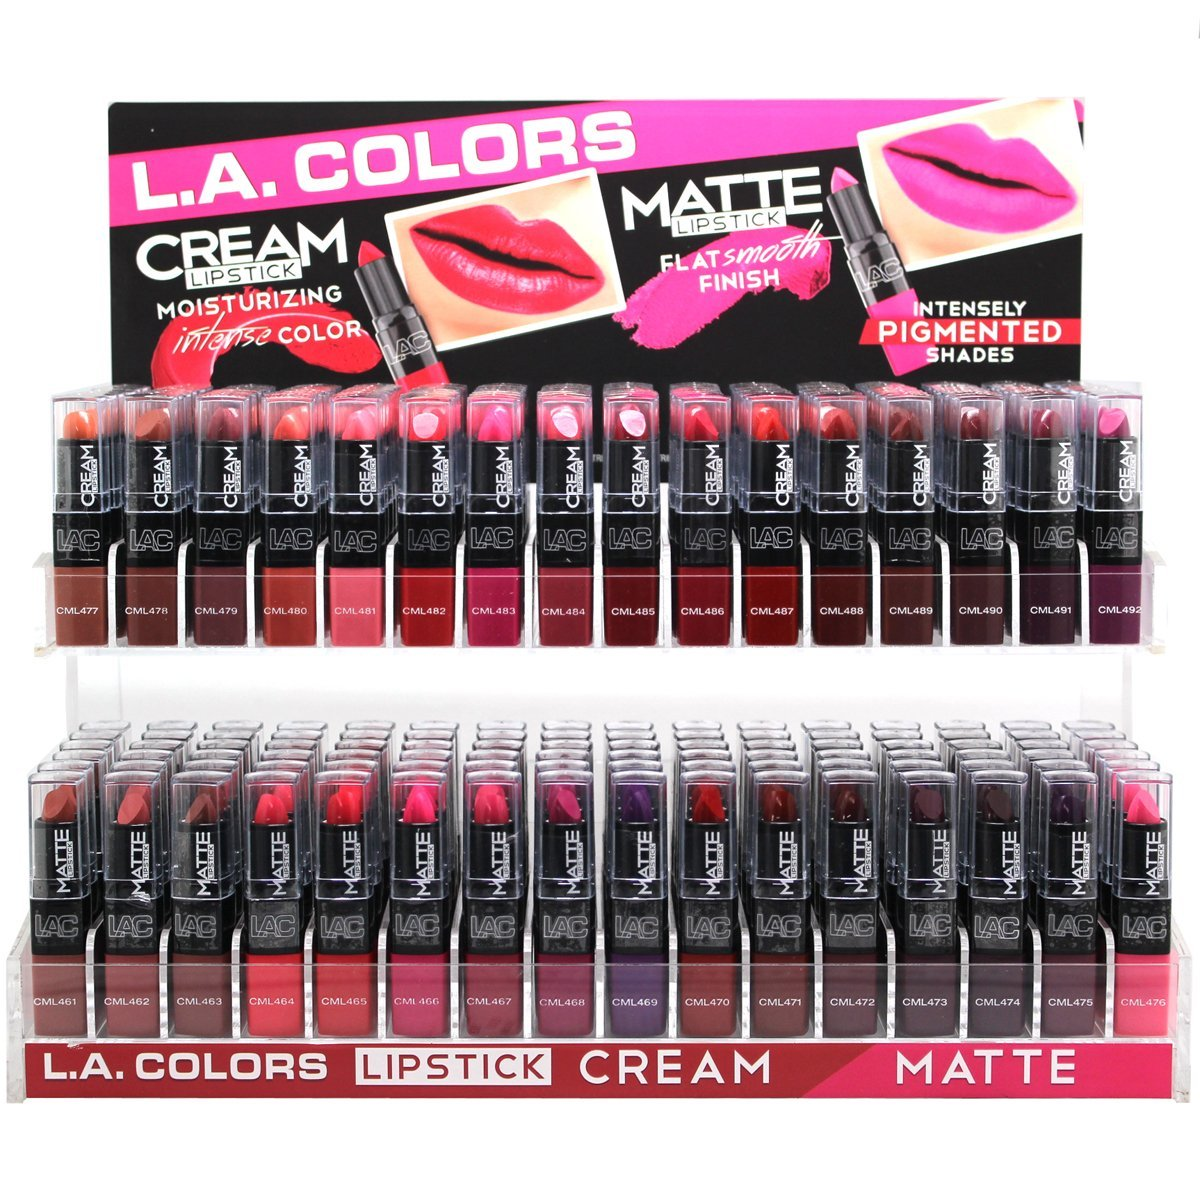 LA COLORS Moisturizing CREAM,Flat Smooth Finish MATTE Lipstick 32pcs